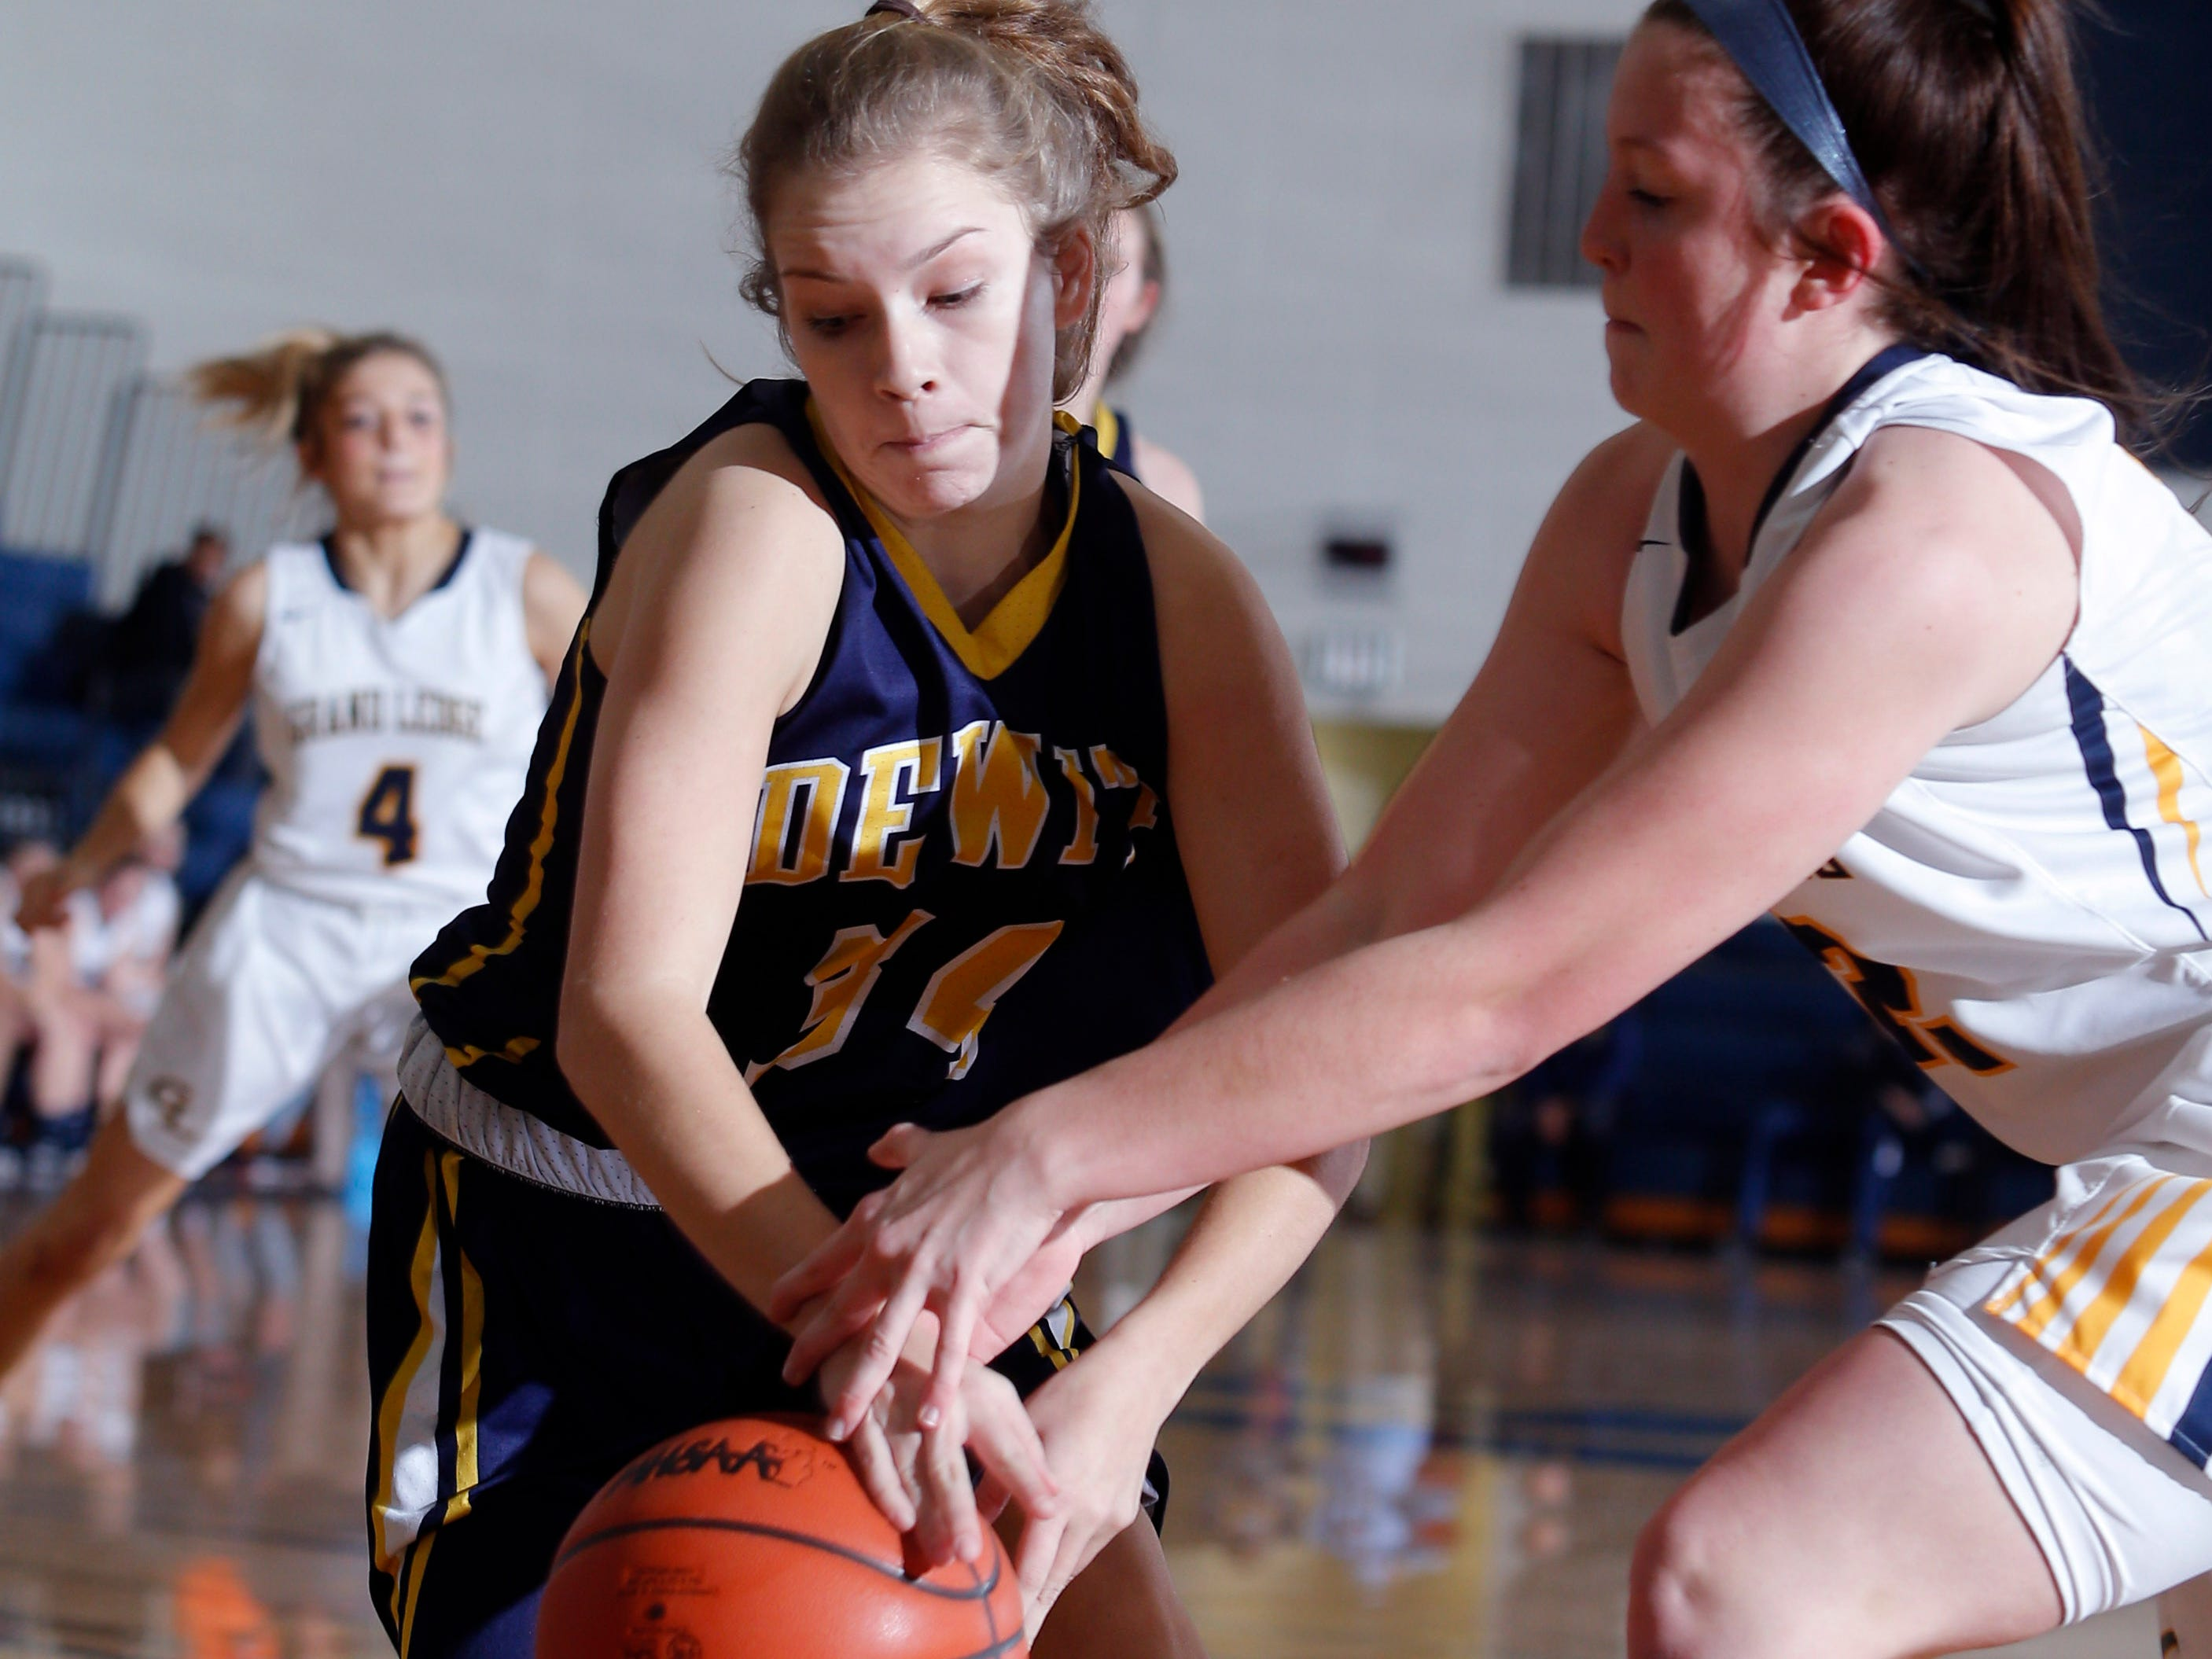 DeWitt's Abbey Dawes, left, and Grand Ledge's Kylee Pier vie for the ball, Tuesday, Jan. 15, 2019, in Grand Ledge, Mich.